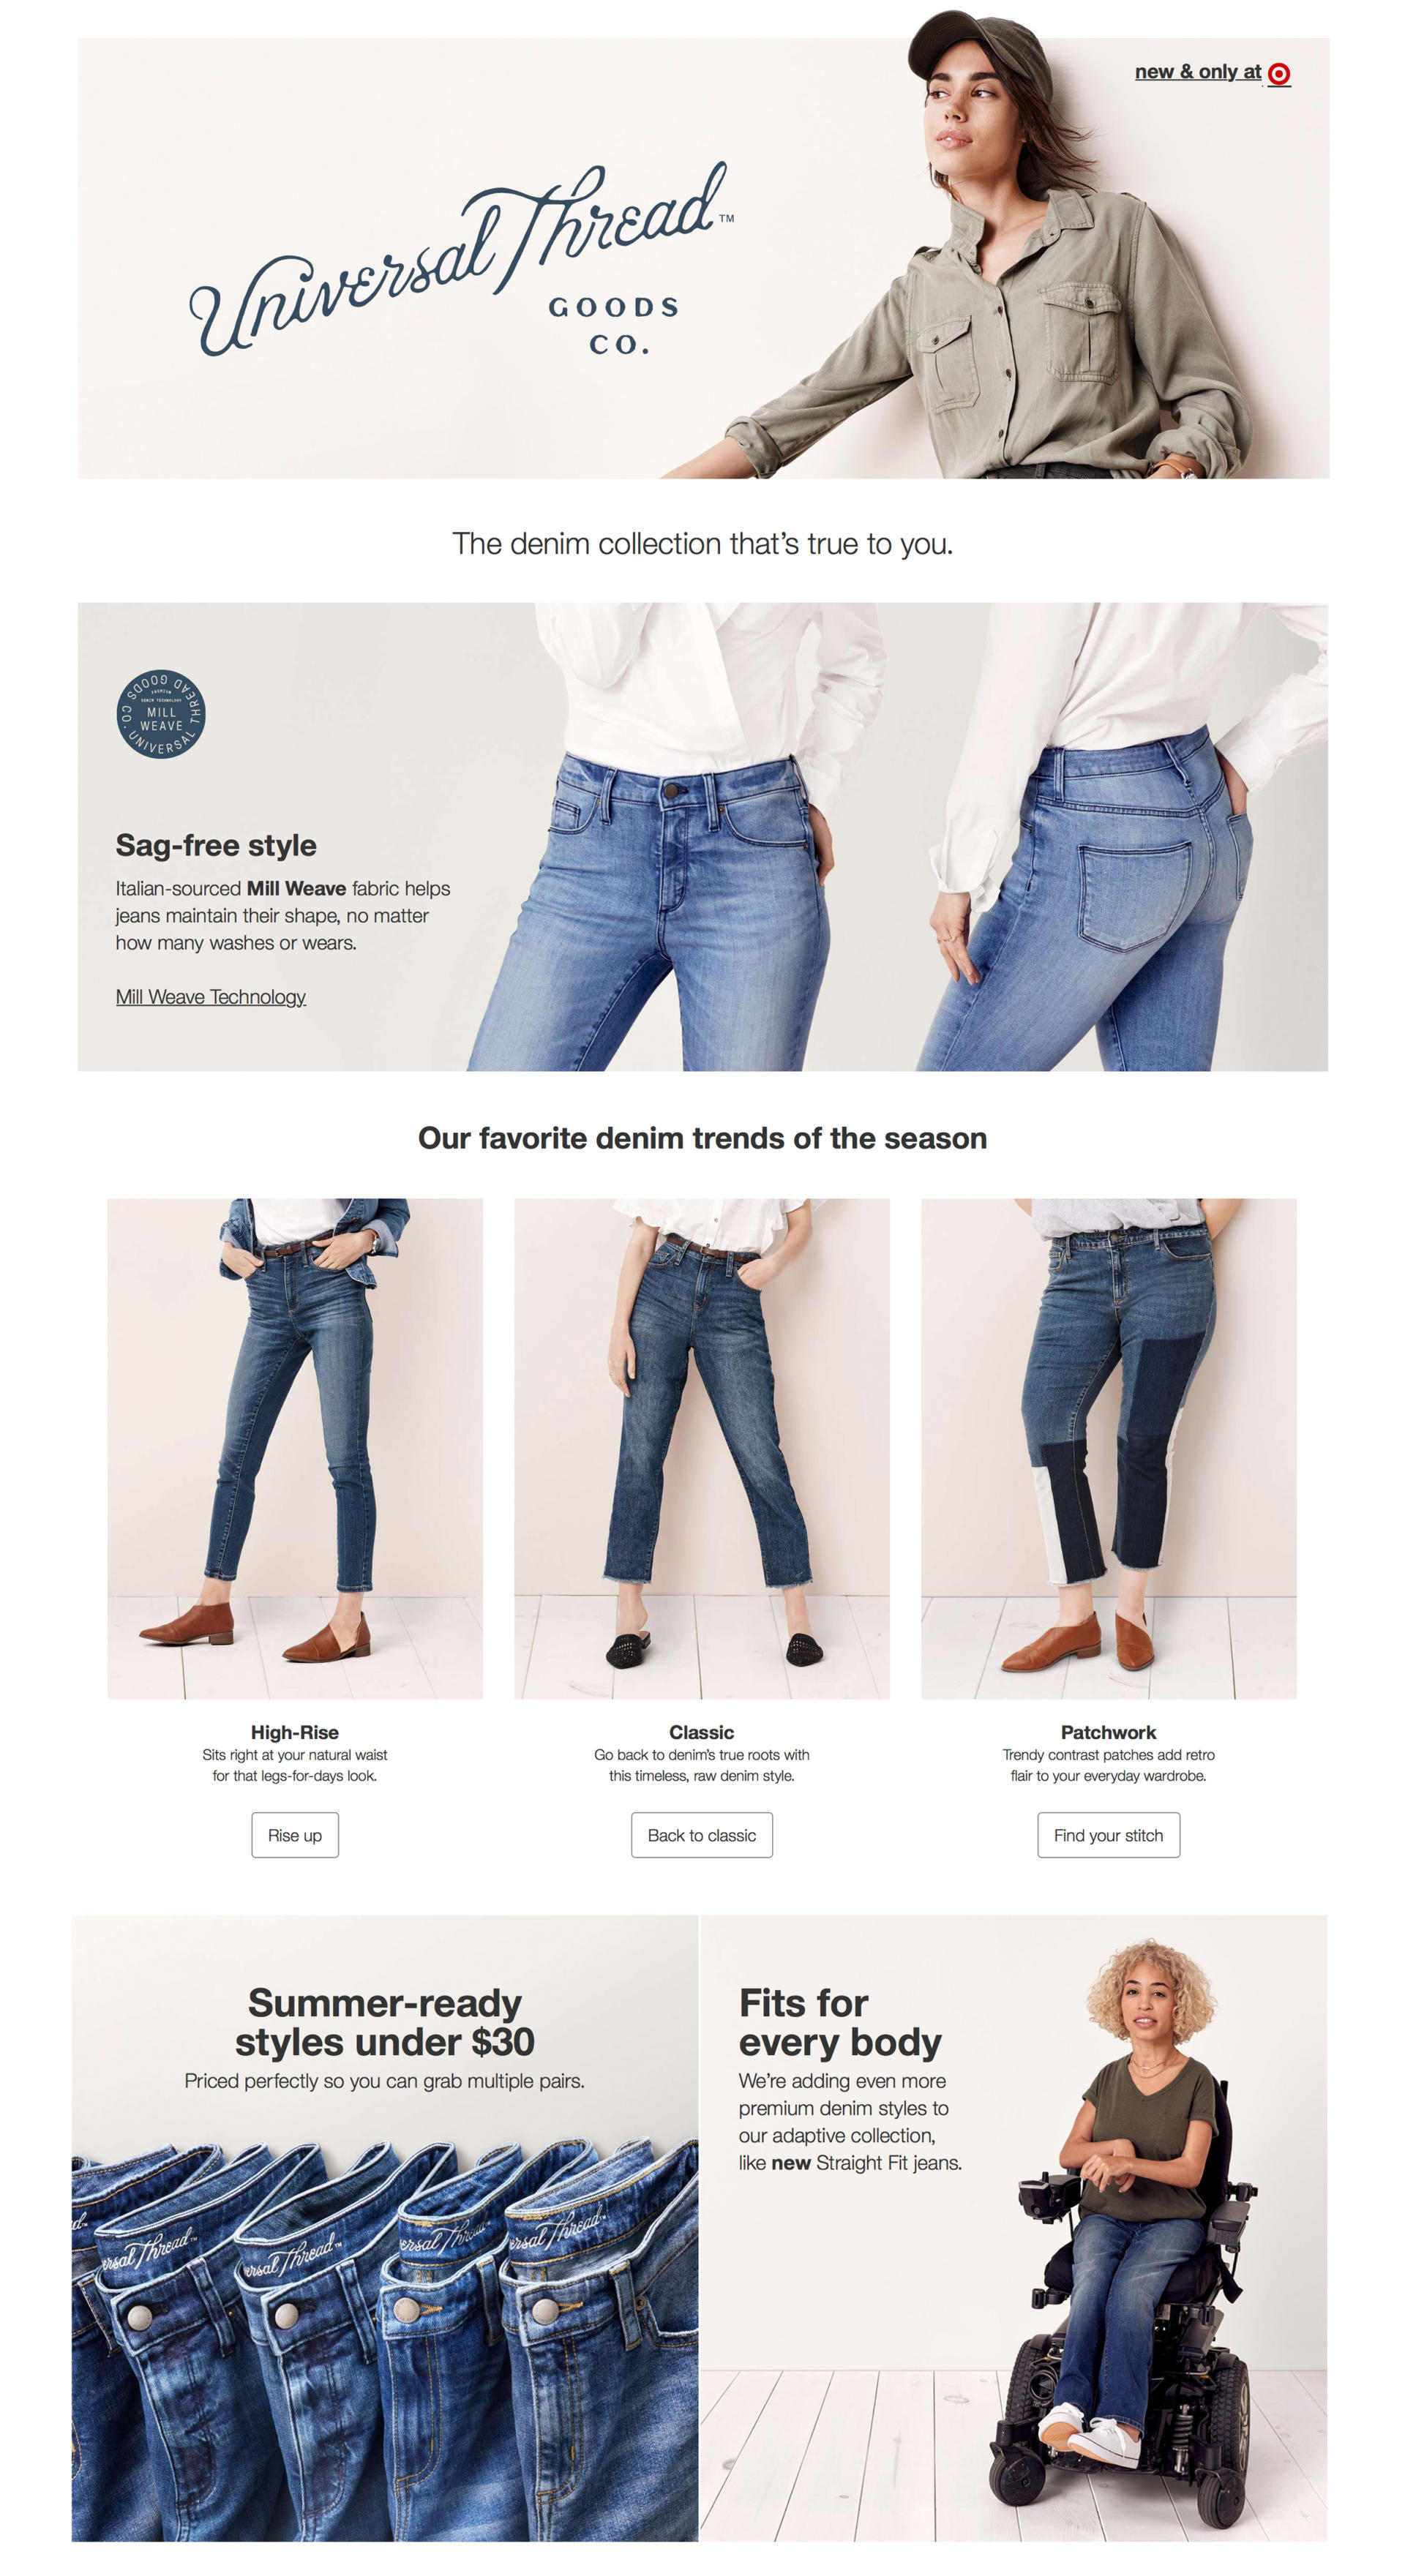 fb65c110f82 Target Jeans  Universal Thread Denim Review - Abby Saylor Armbruster